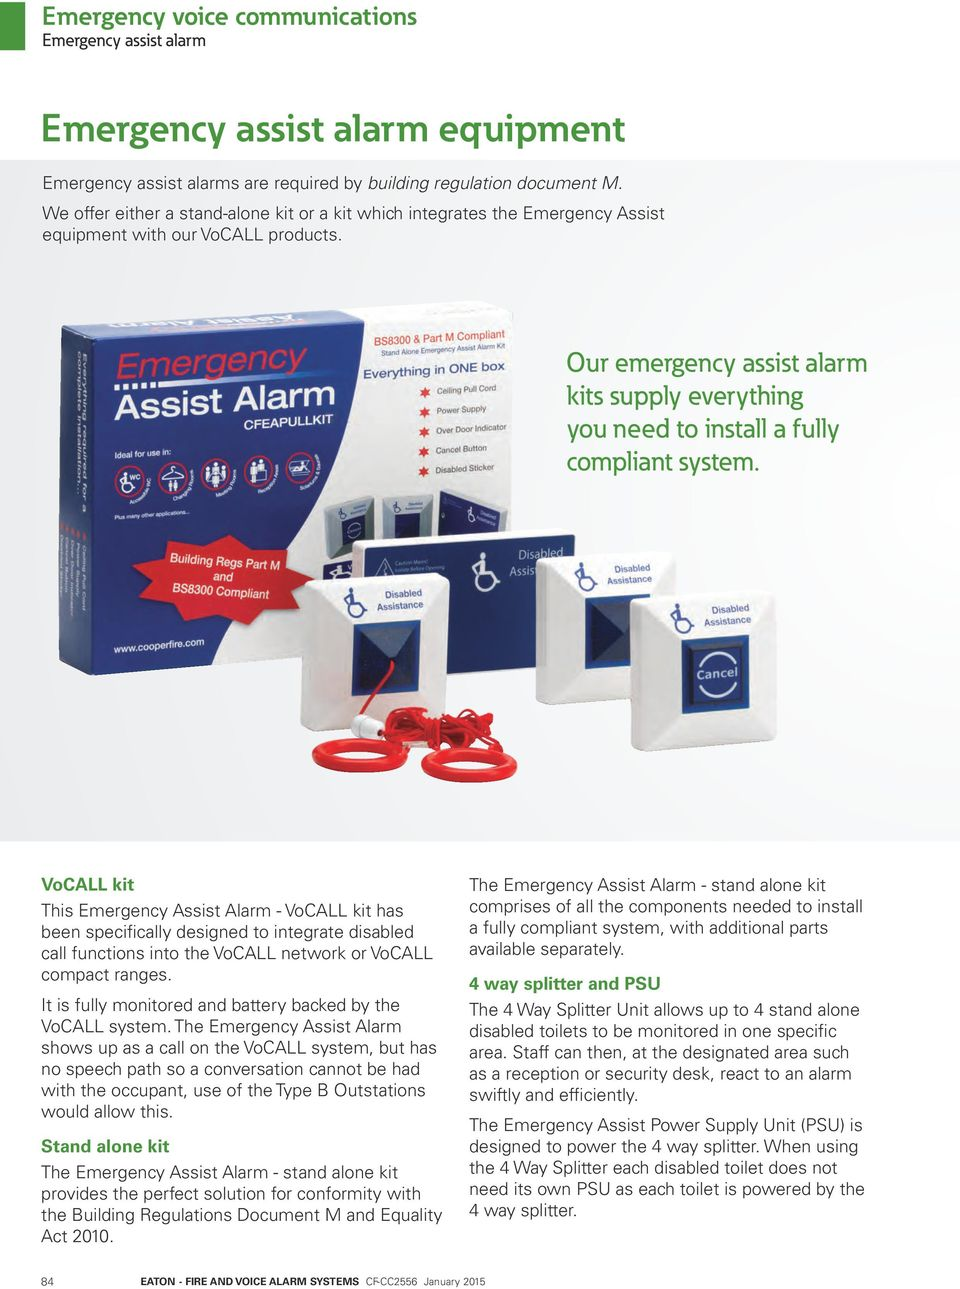 Our emergency assist alarm kits supply everything you need to install a fully compliant system.